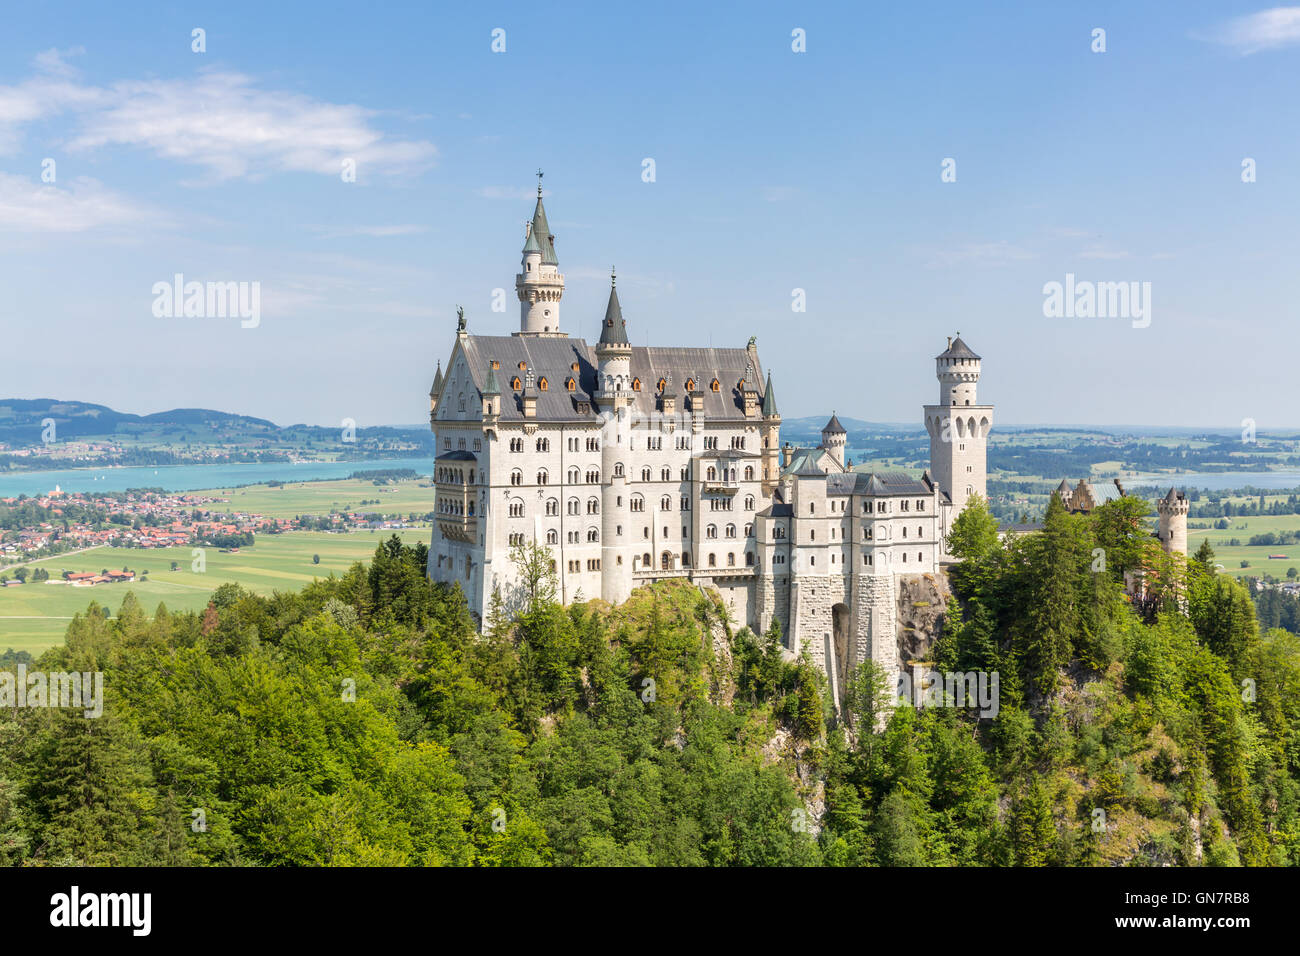 Beautiful summer view of the Neuschwanstein castle at Fussen Bavaria, Germany - Stock Image